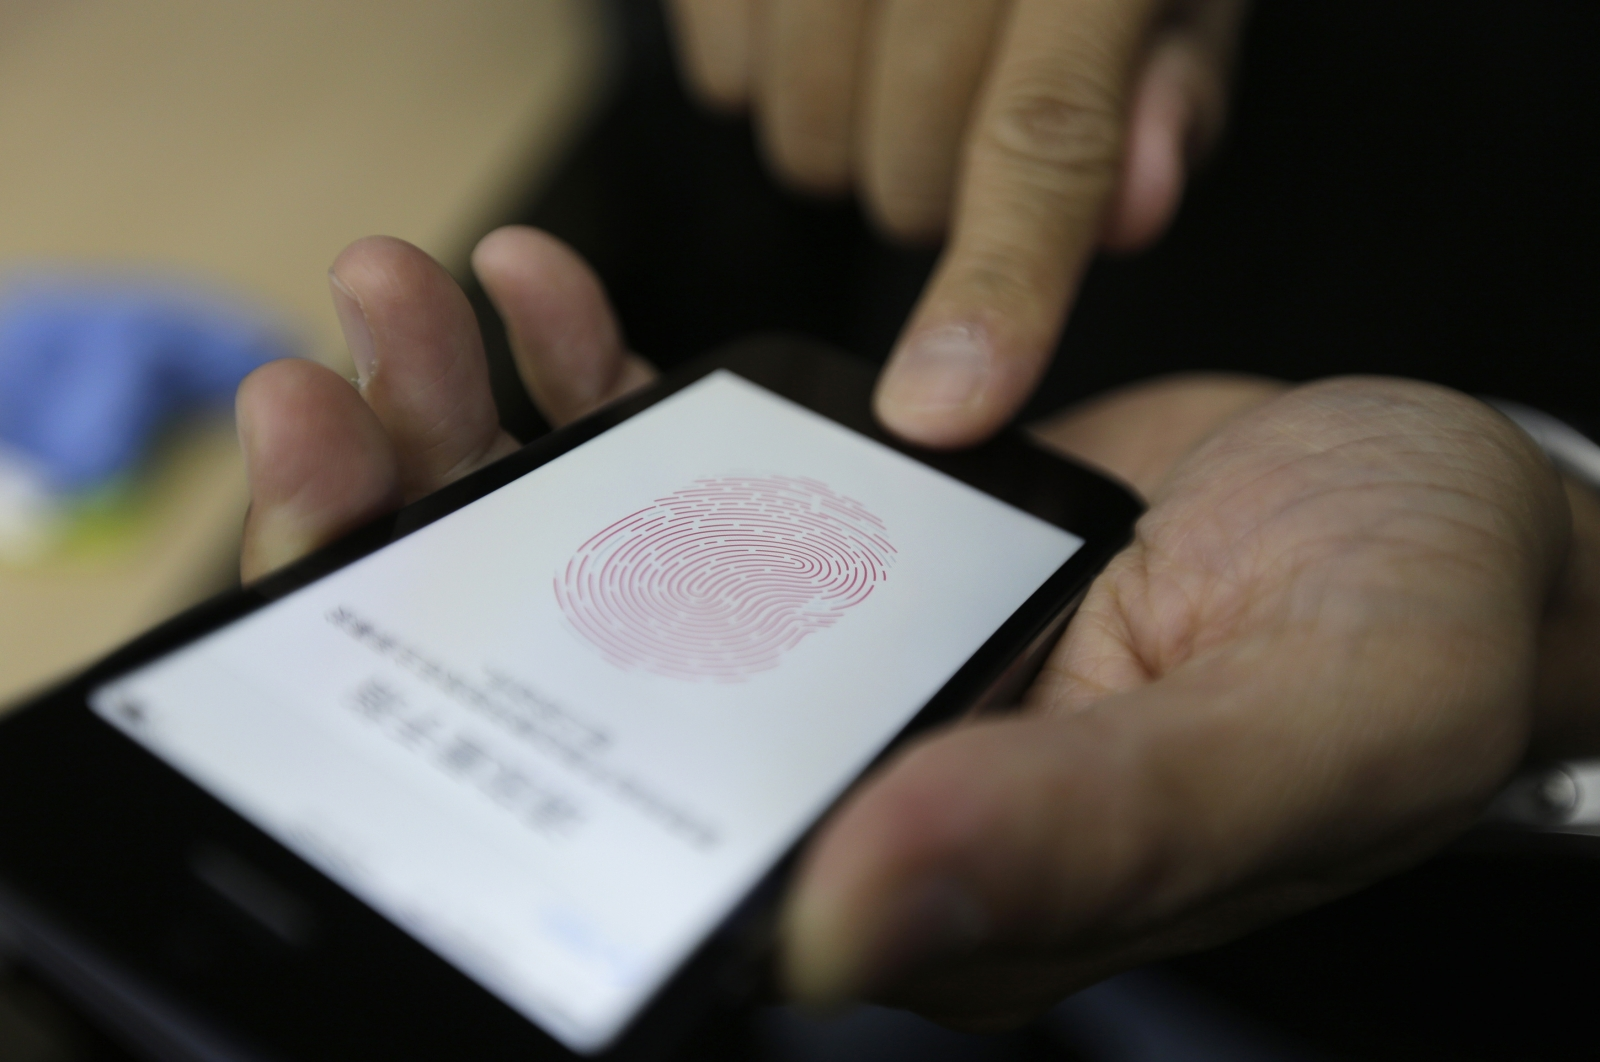 Fingerprint recognition phone